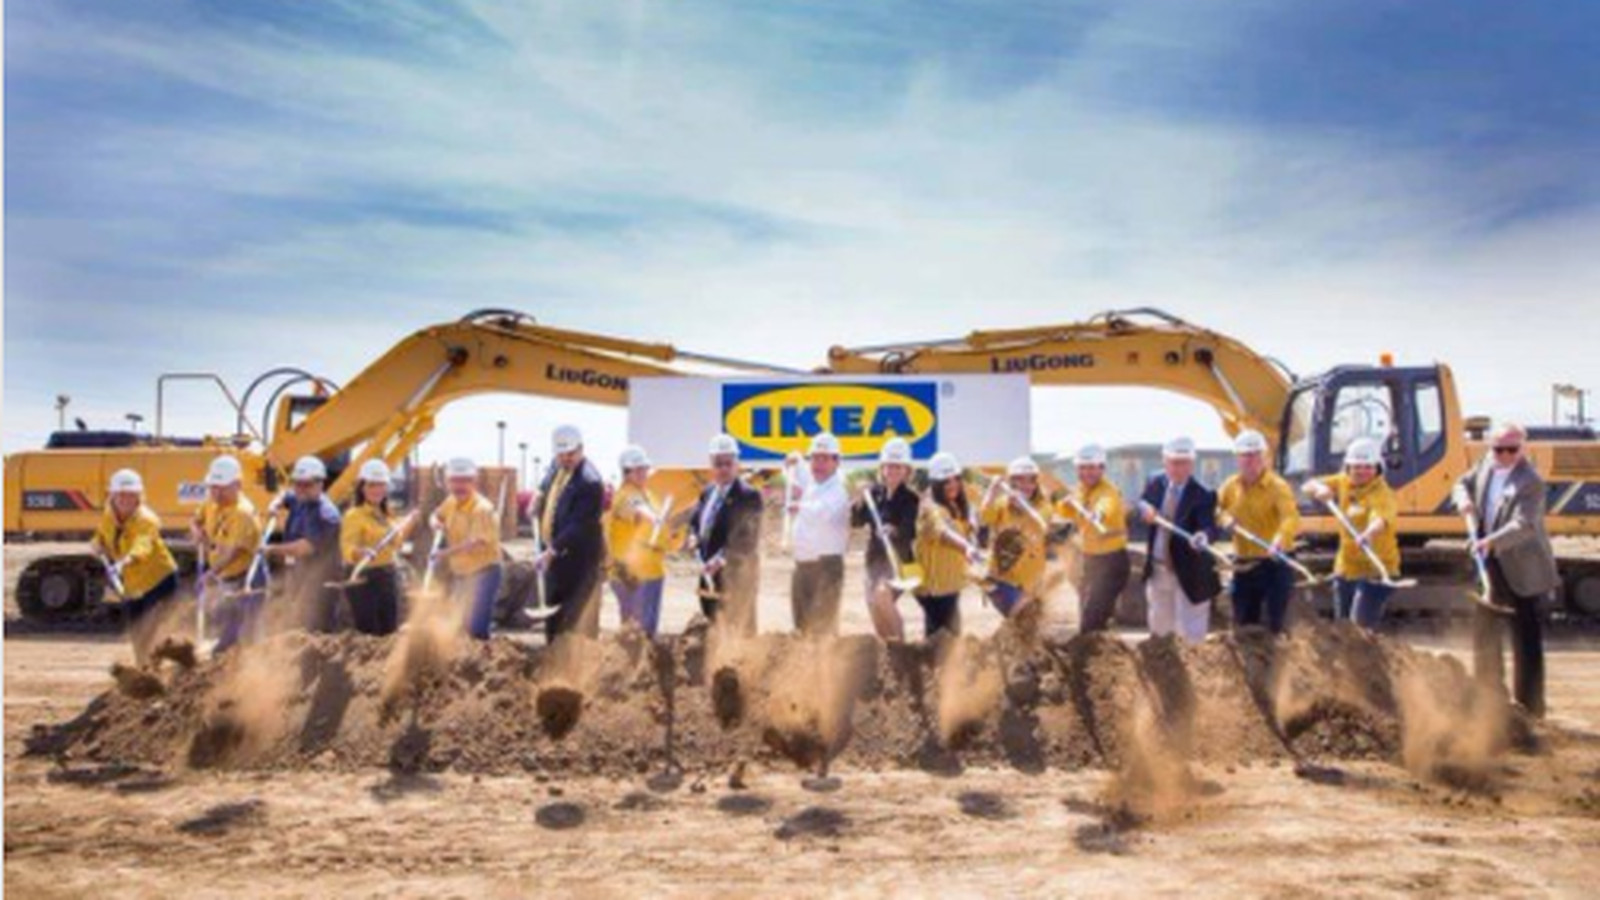 Work Begins On The Biggest Ikea In The United States